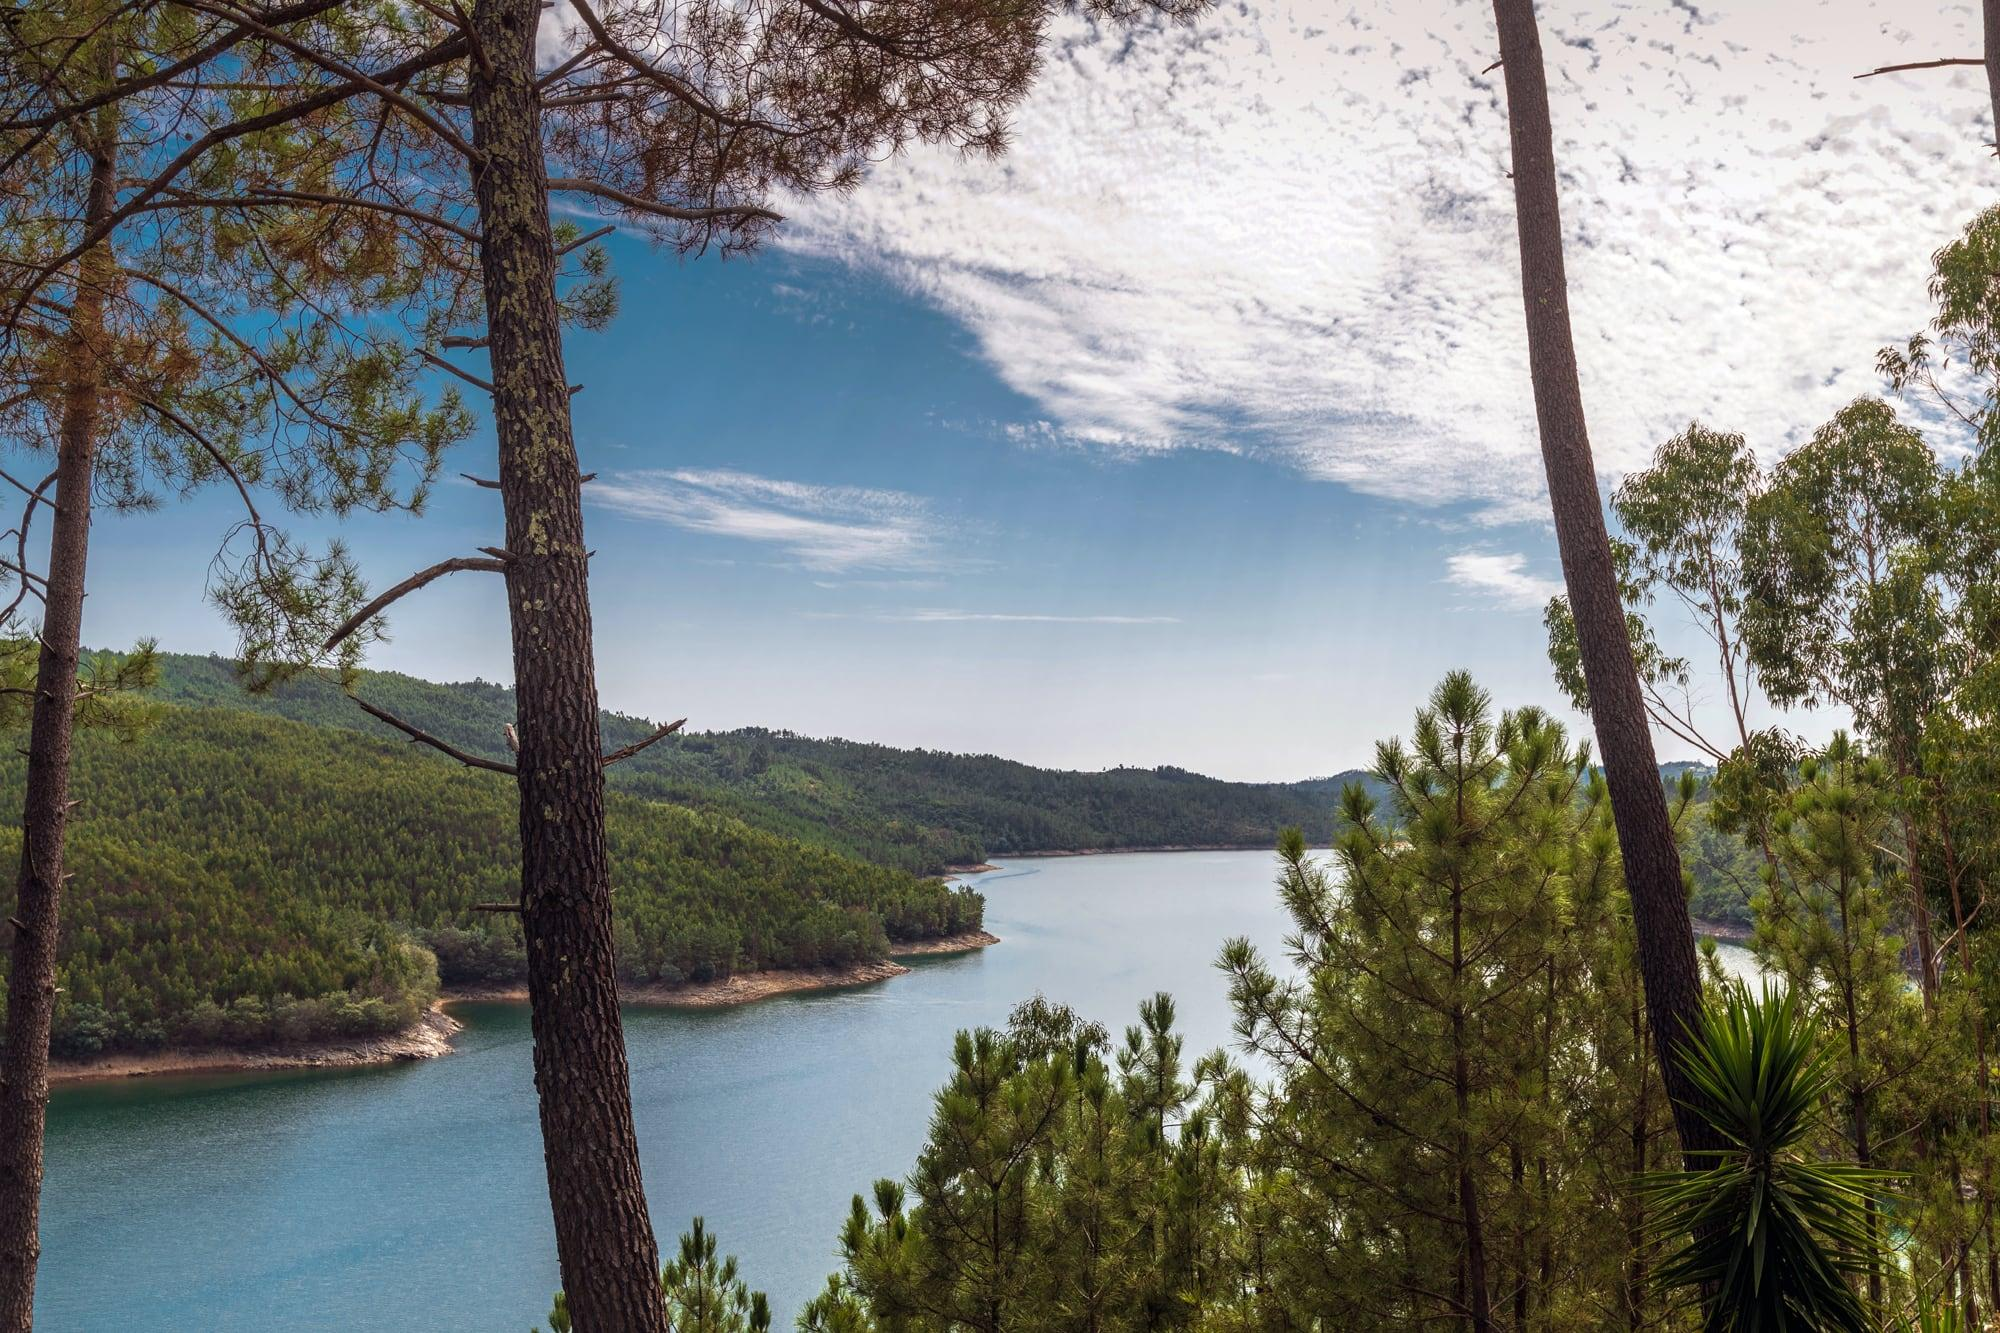 Retreats in Portugal to book, such as yoga and coaching holidays